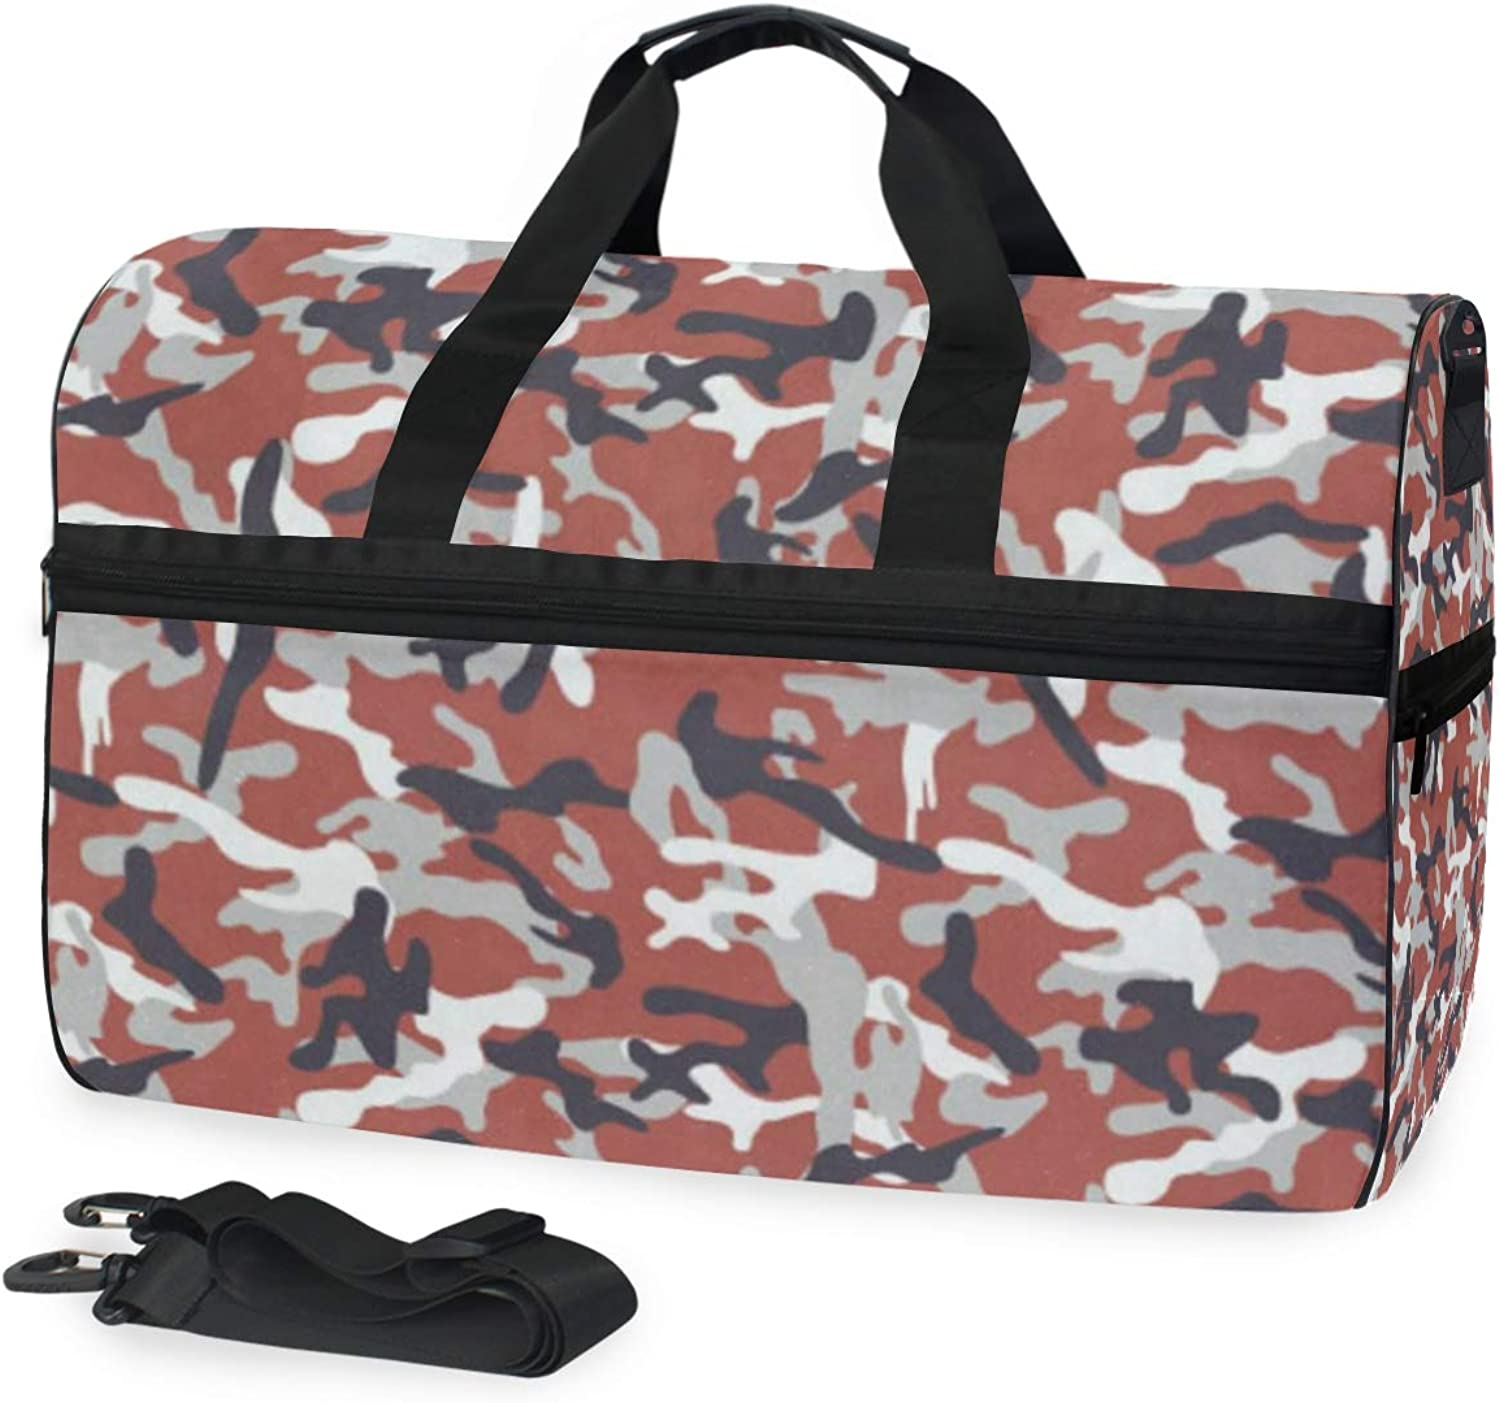 Camouflage Pattern Gym Bags for Men&Women Duffel Bag Weekender Bag with shoes Compartment